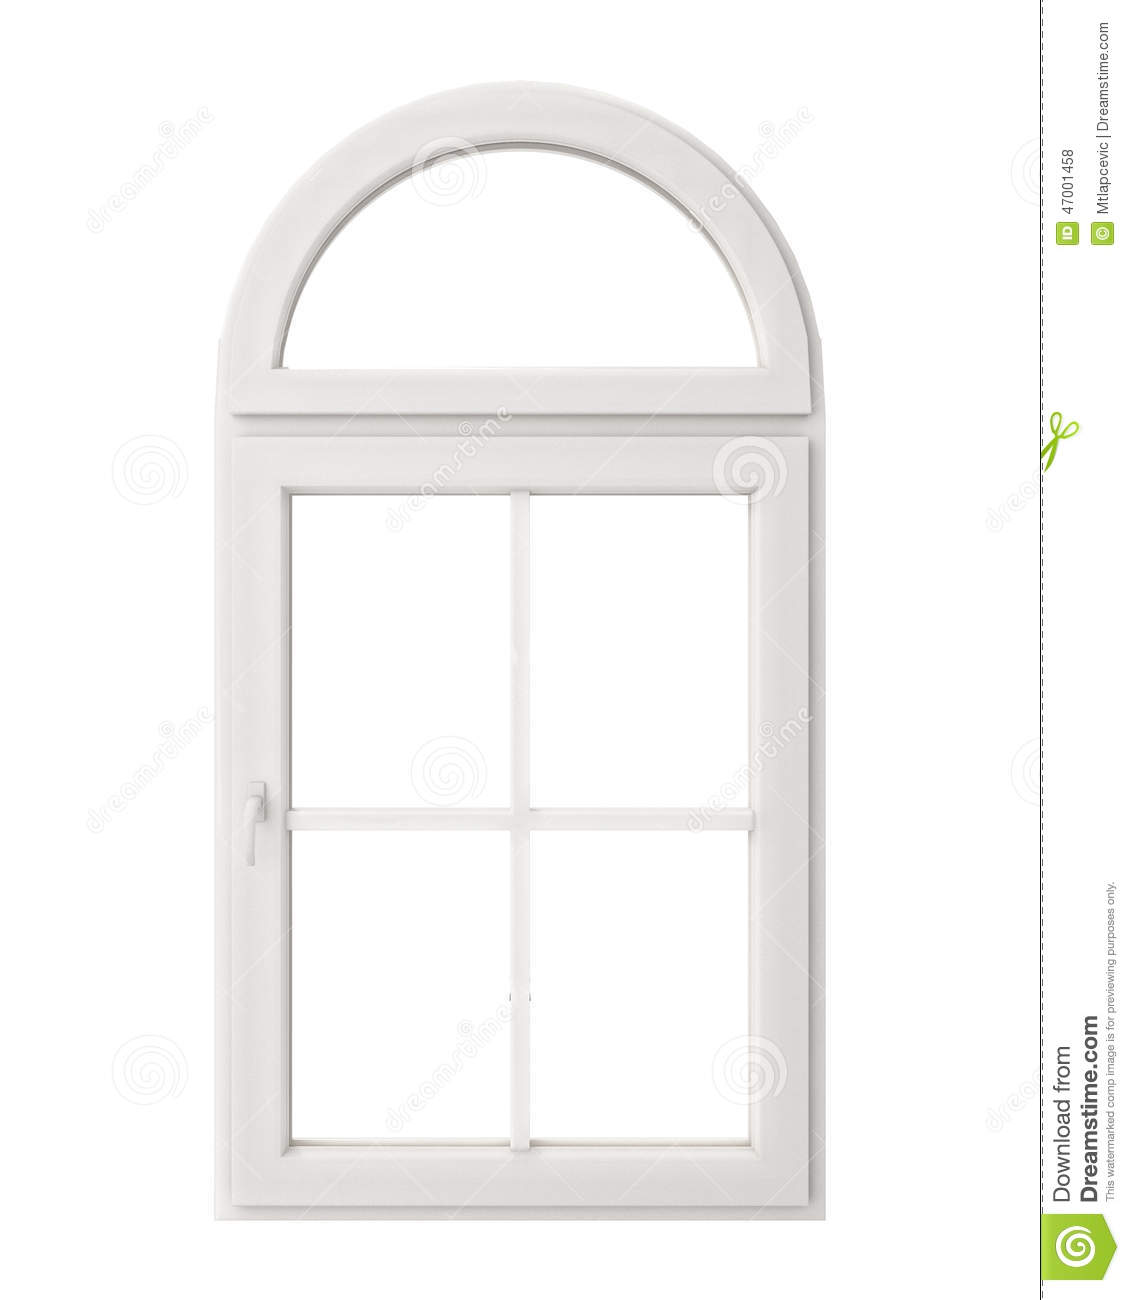 White window frame - White Window Frame Isolated On White Background